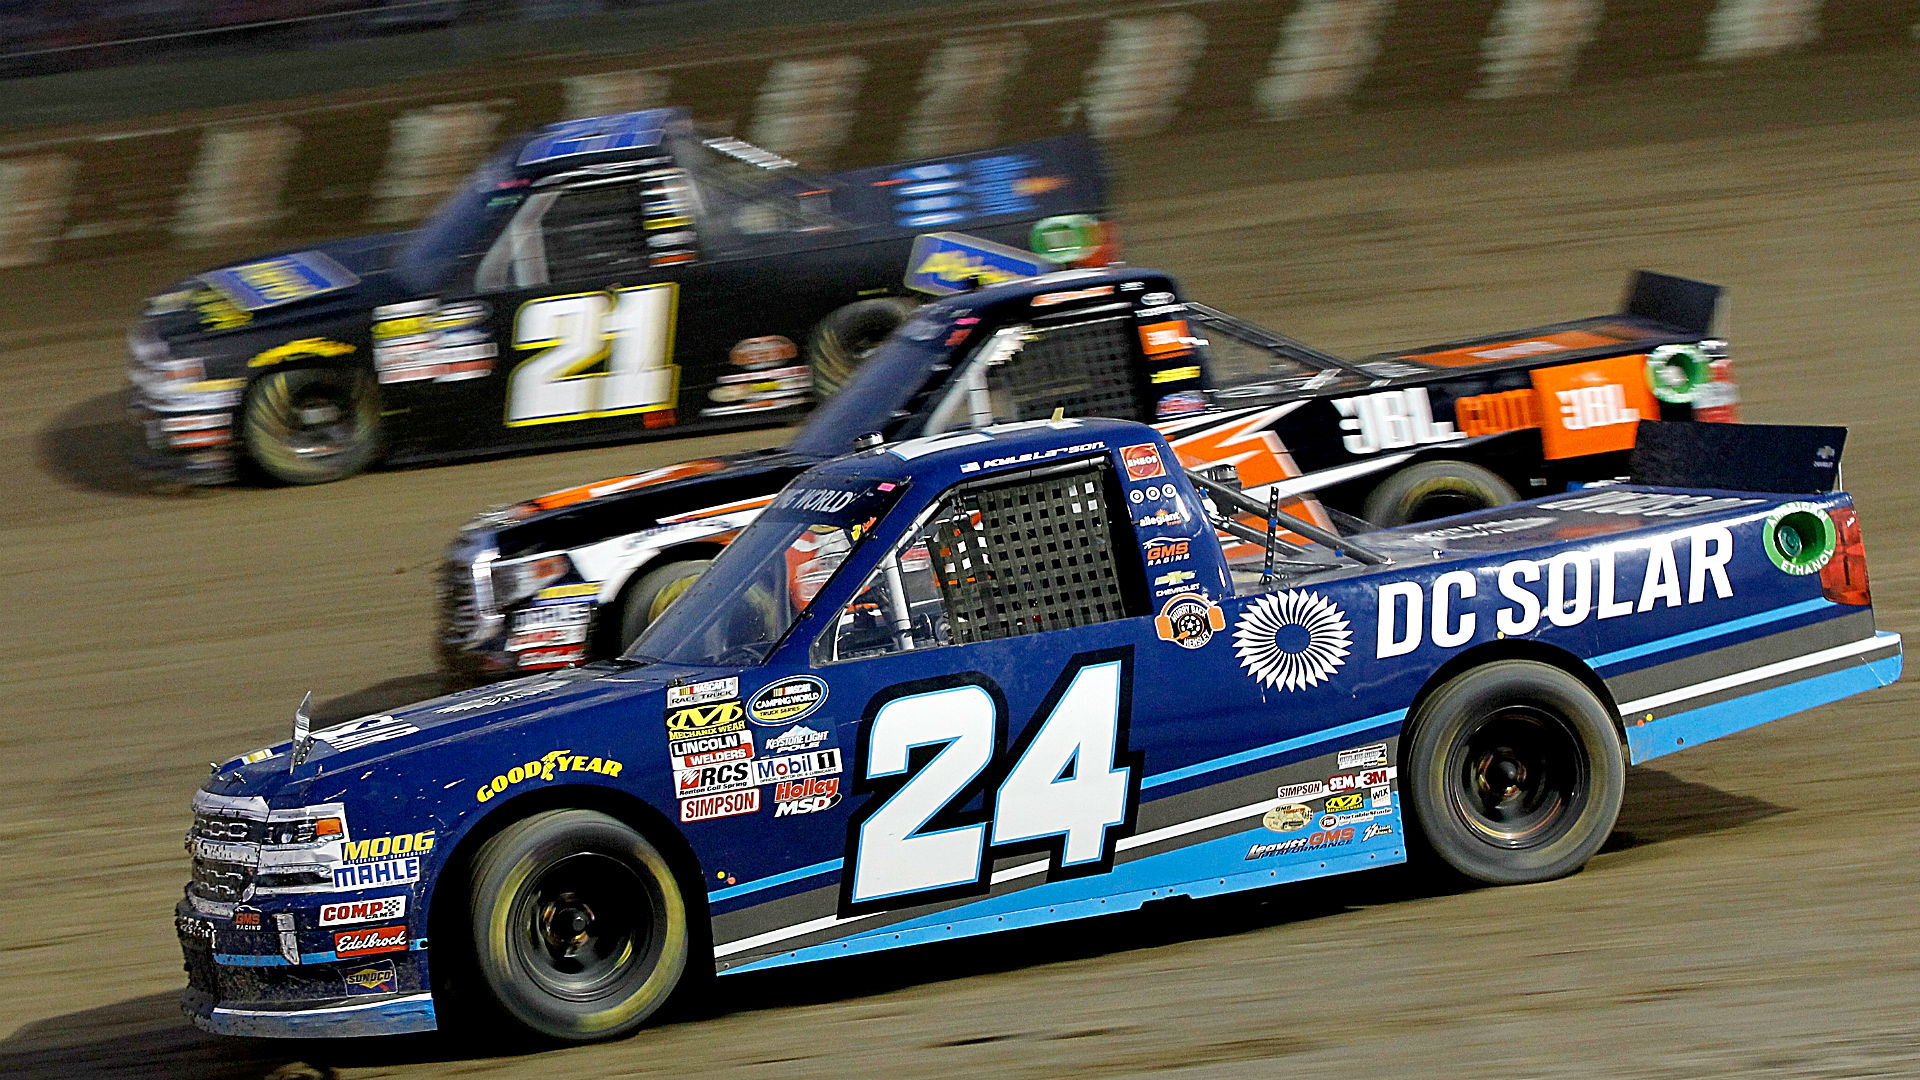 nascar truck series results at eldora kyle larson overcomes tire issues for dirt victory. Black Bedroom Furniture Sets. Home Design Ideas